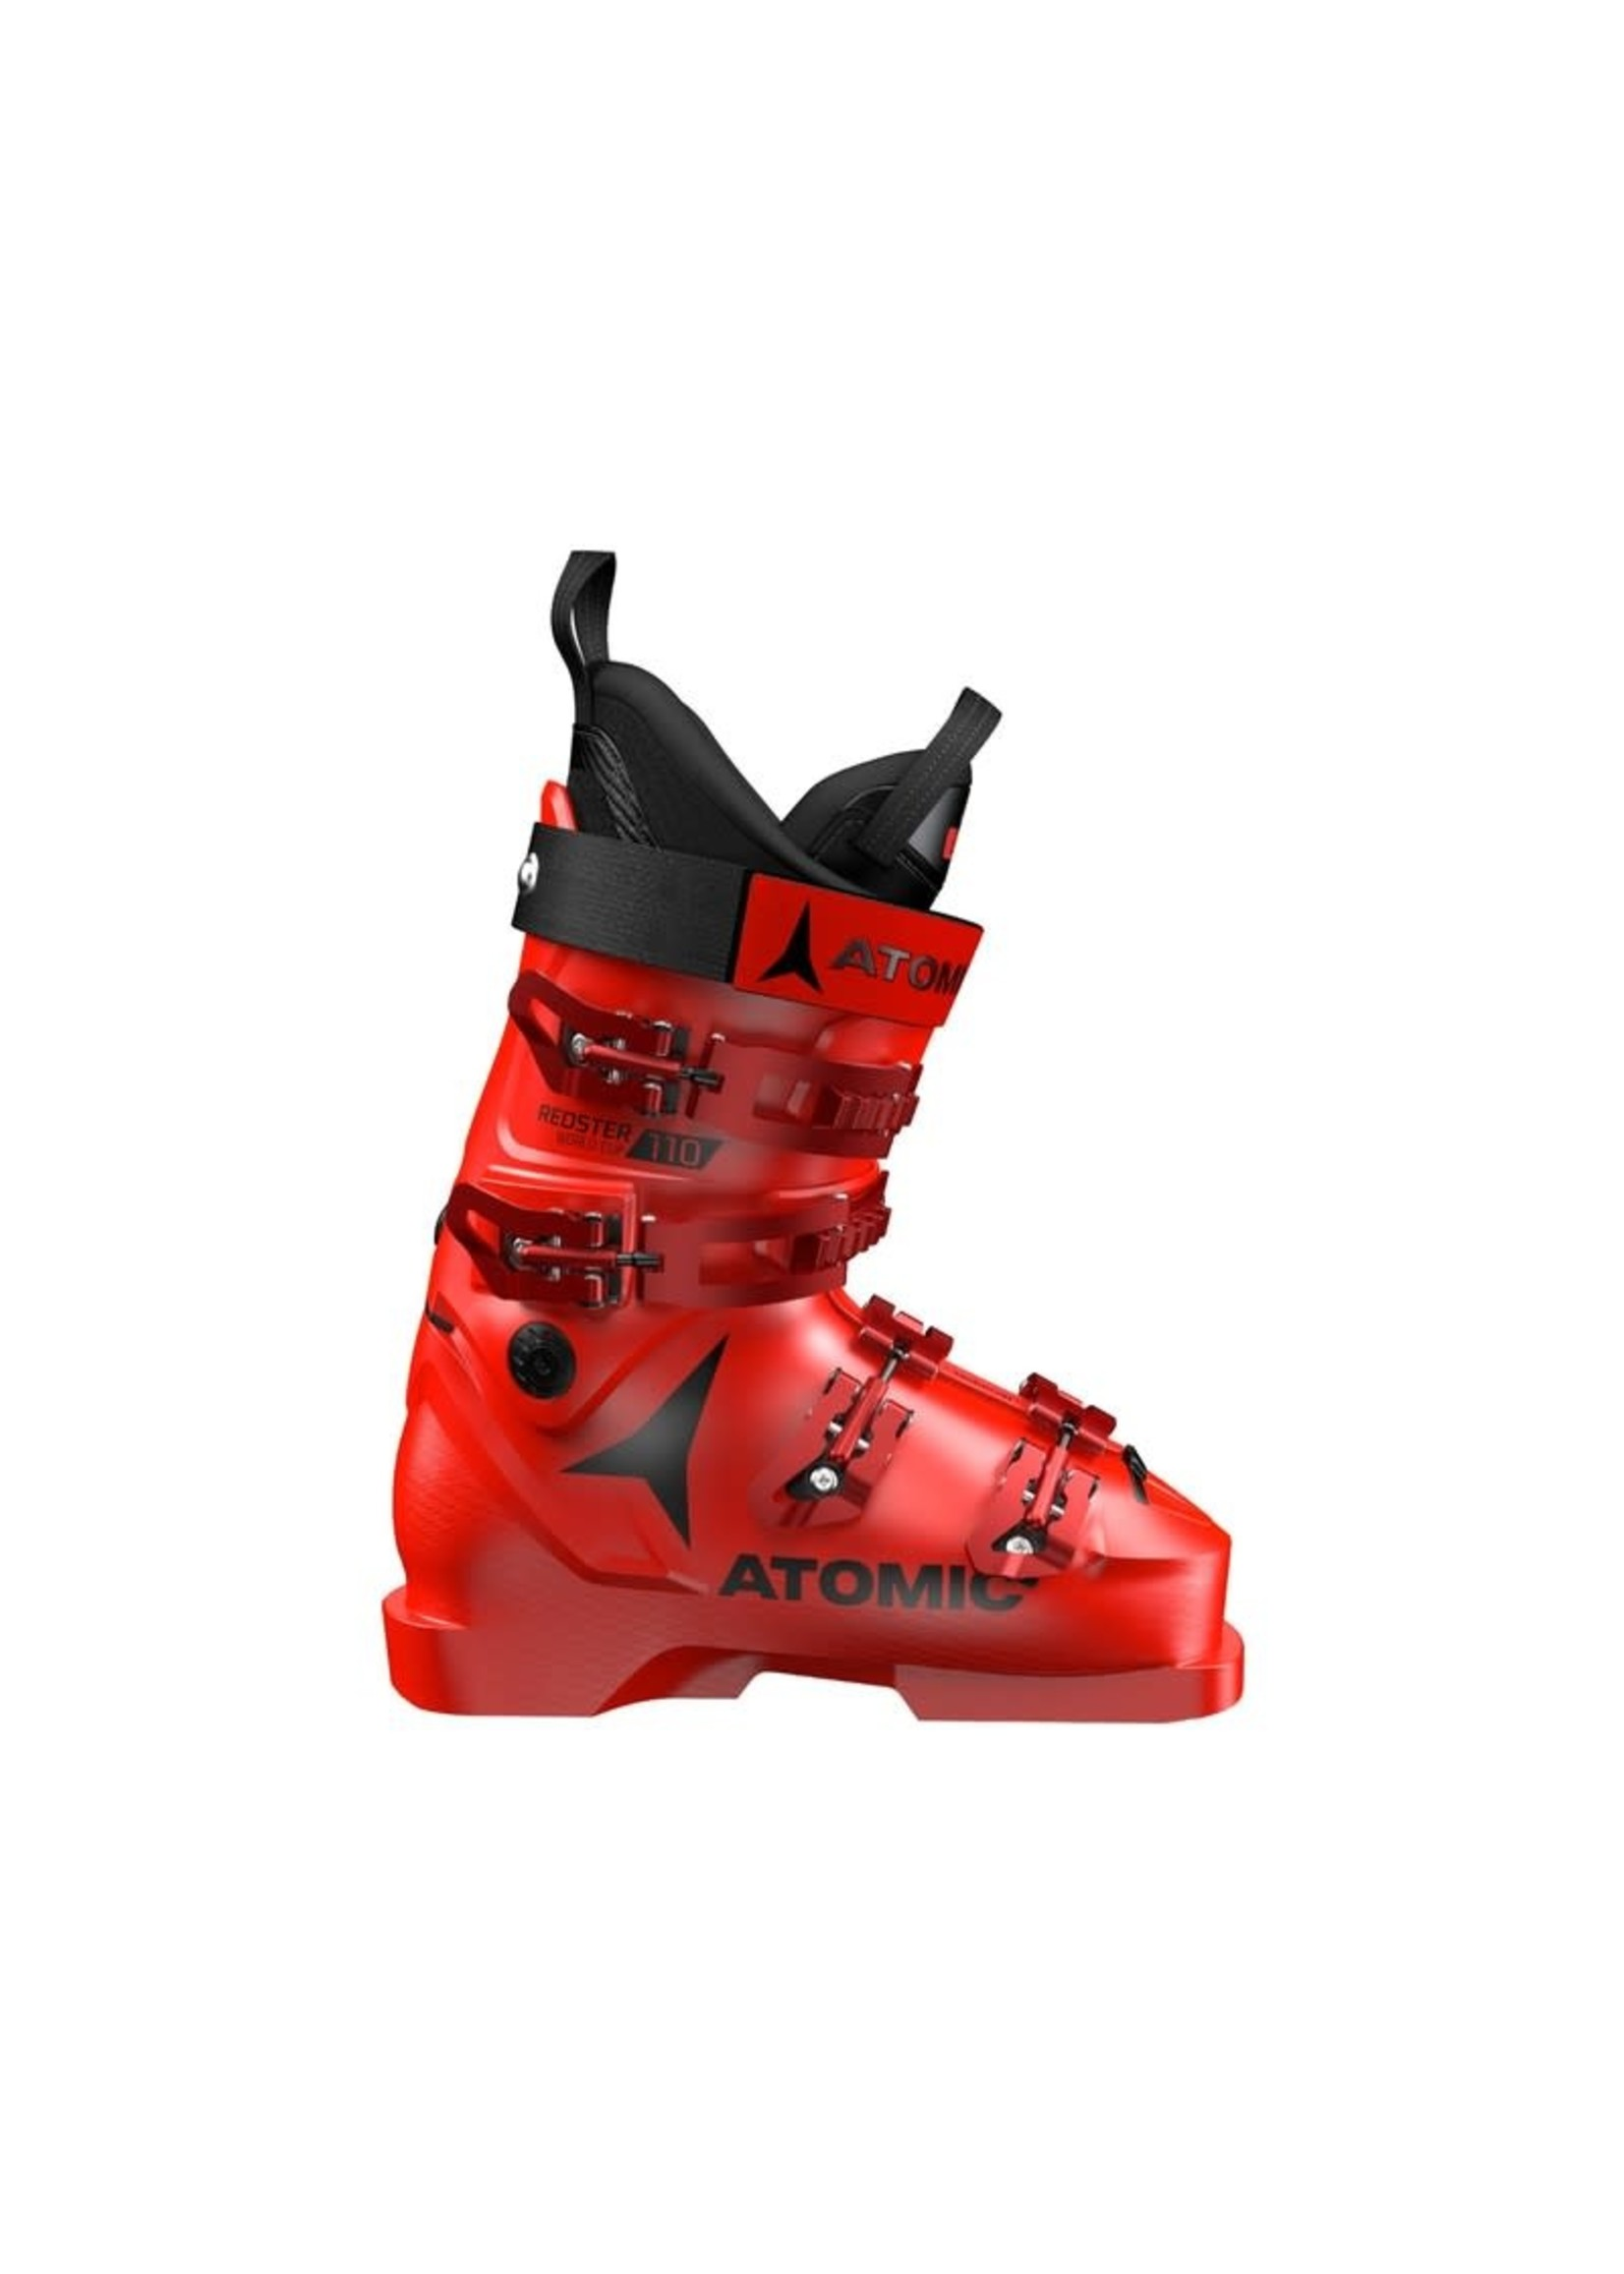 Atomic Red WC 110